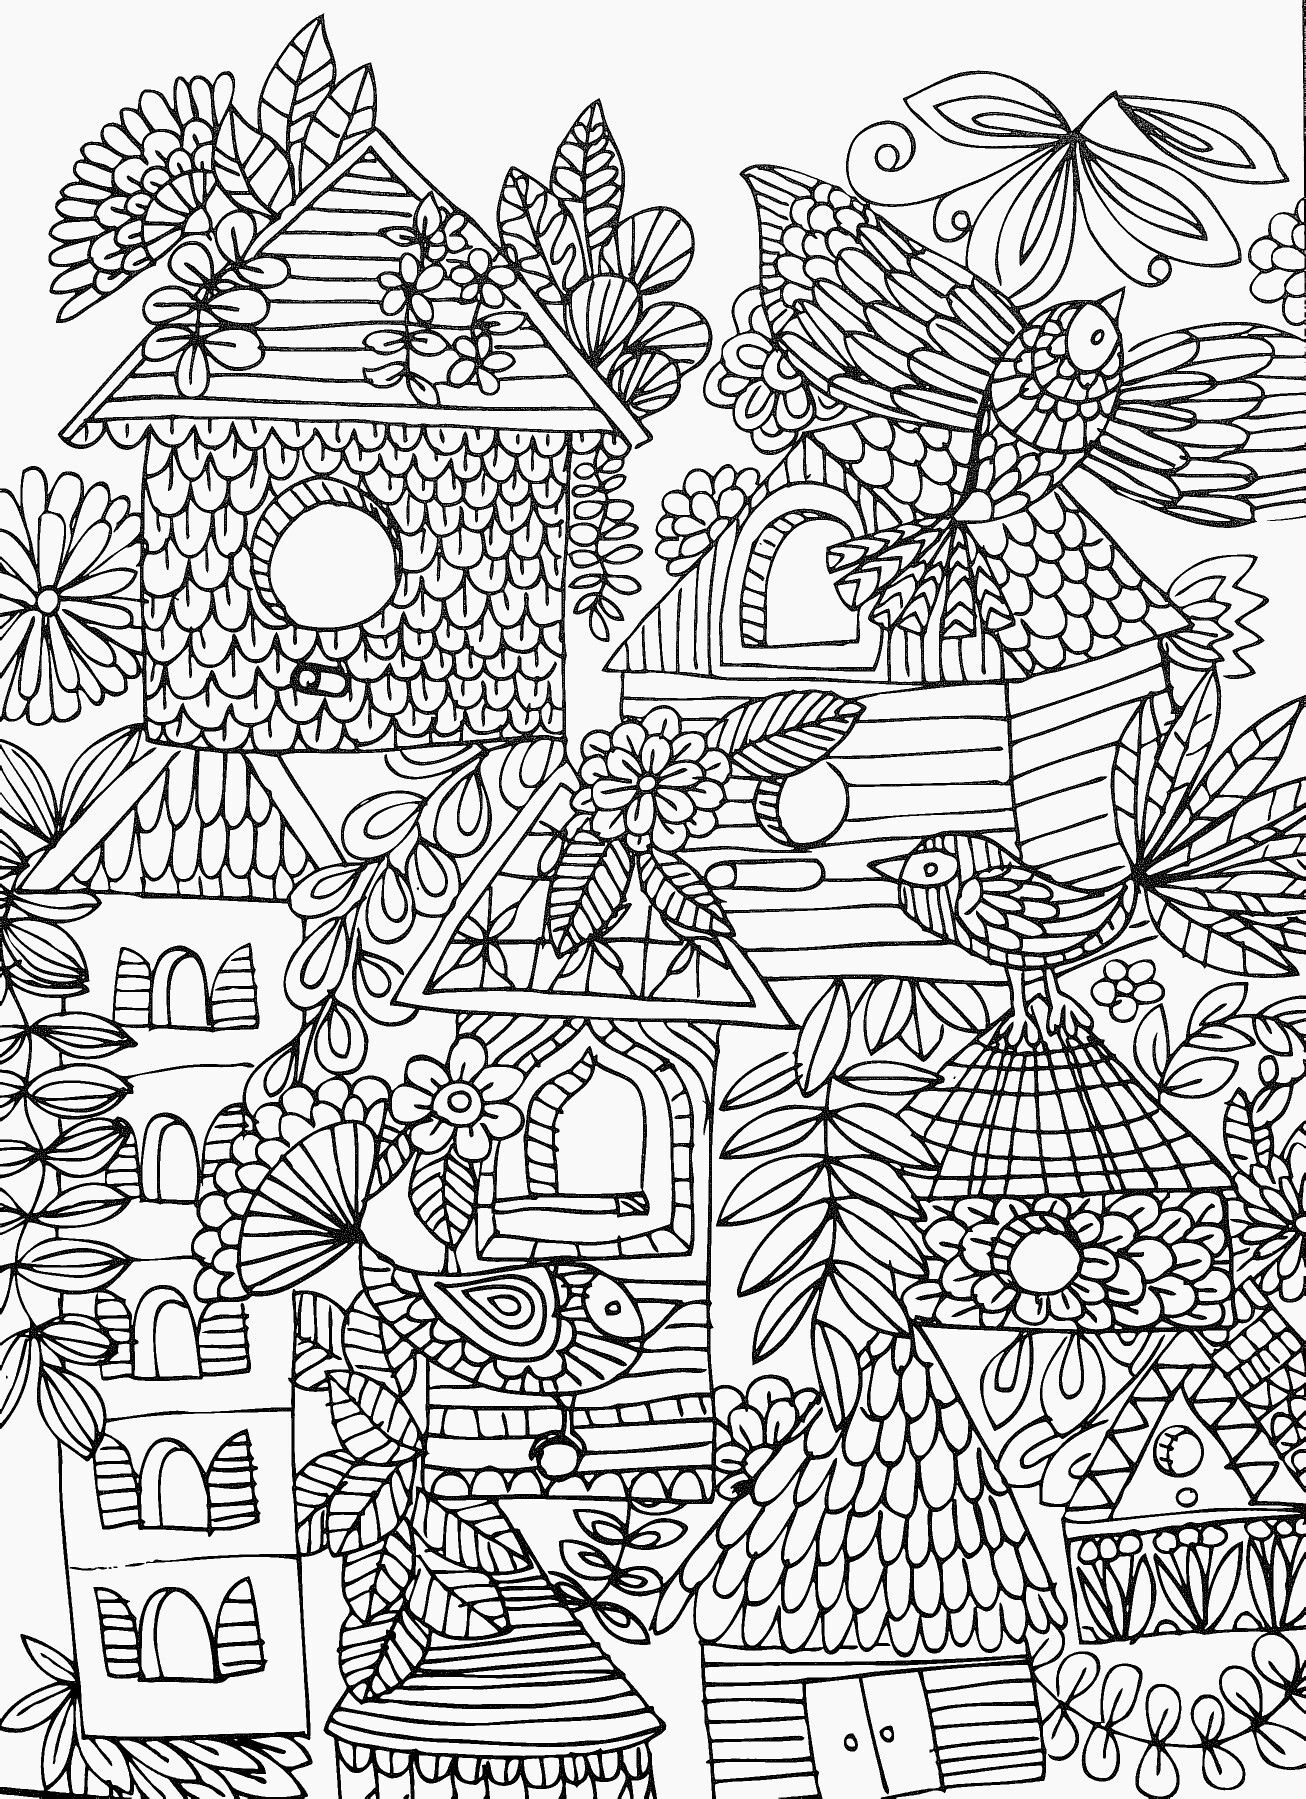 Fun & funky birds & birdhouses adult coloring page ...   coloring pages for adults cool